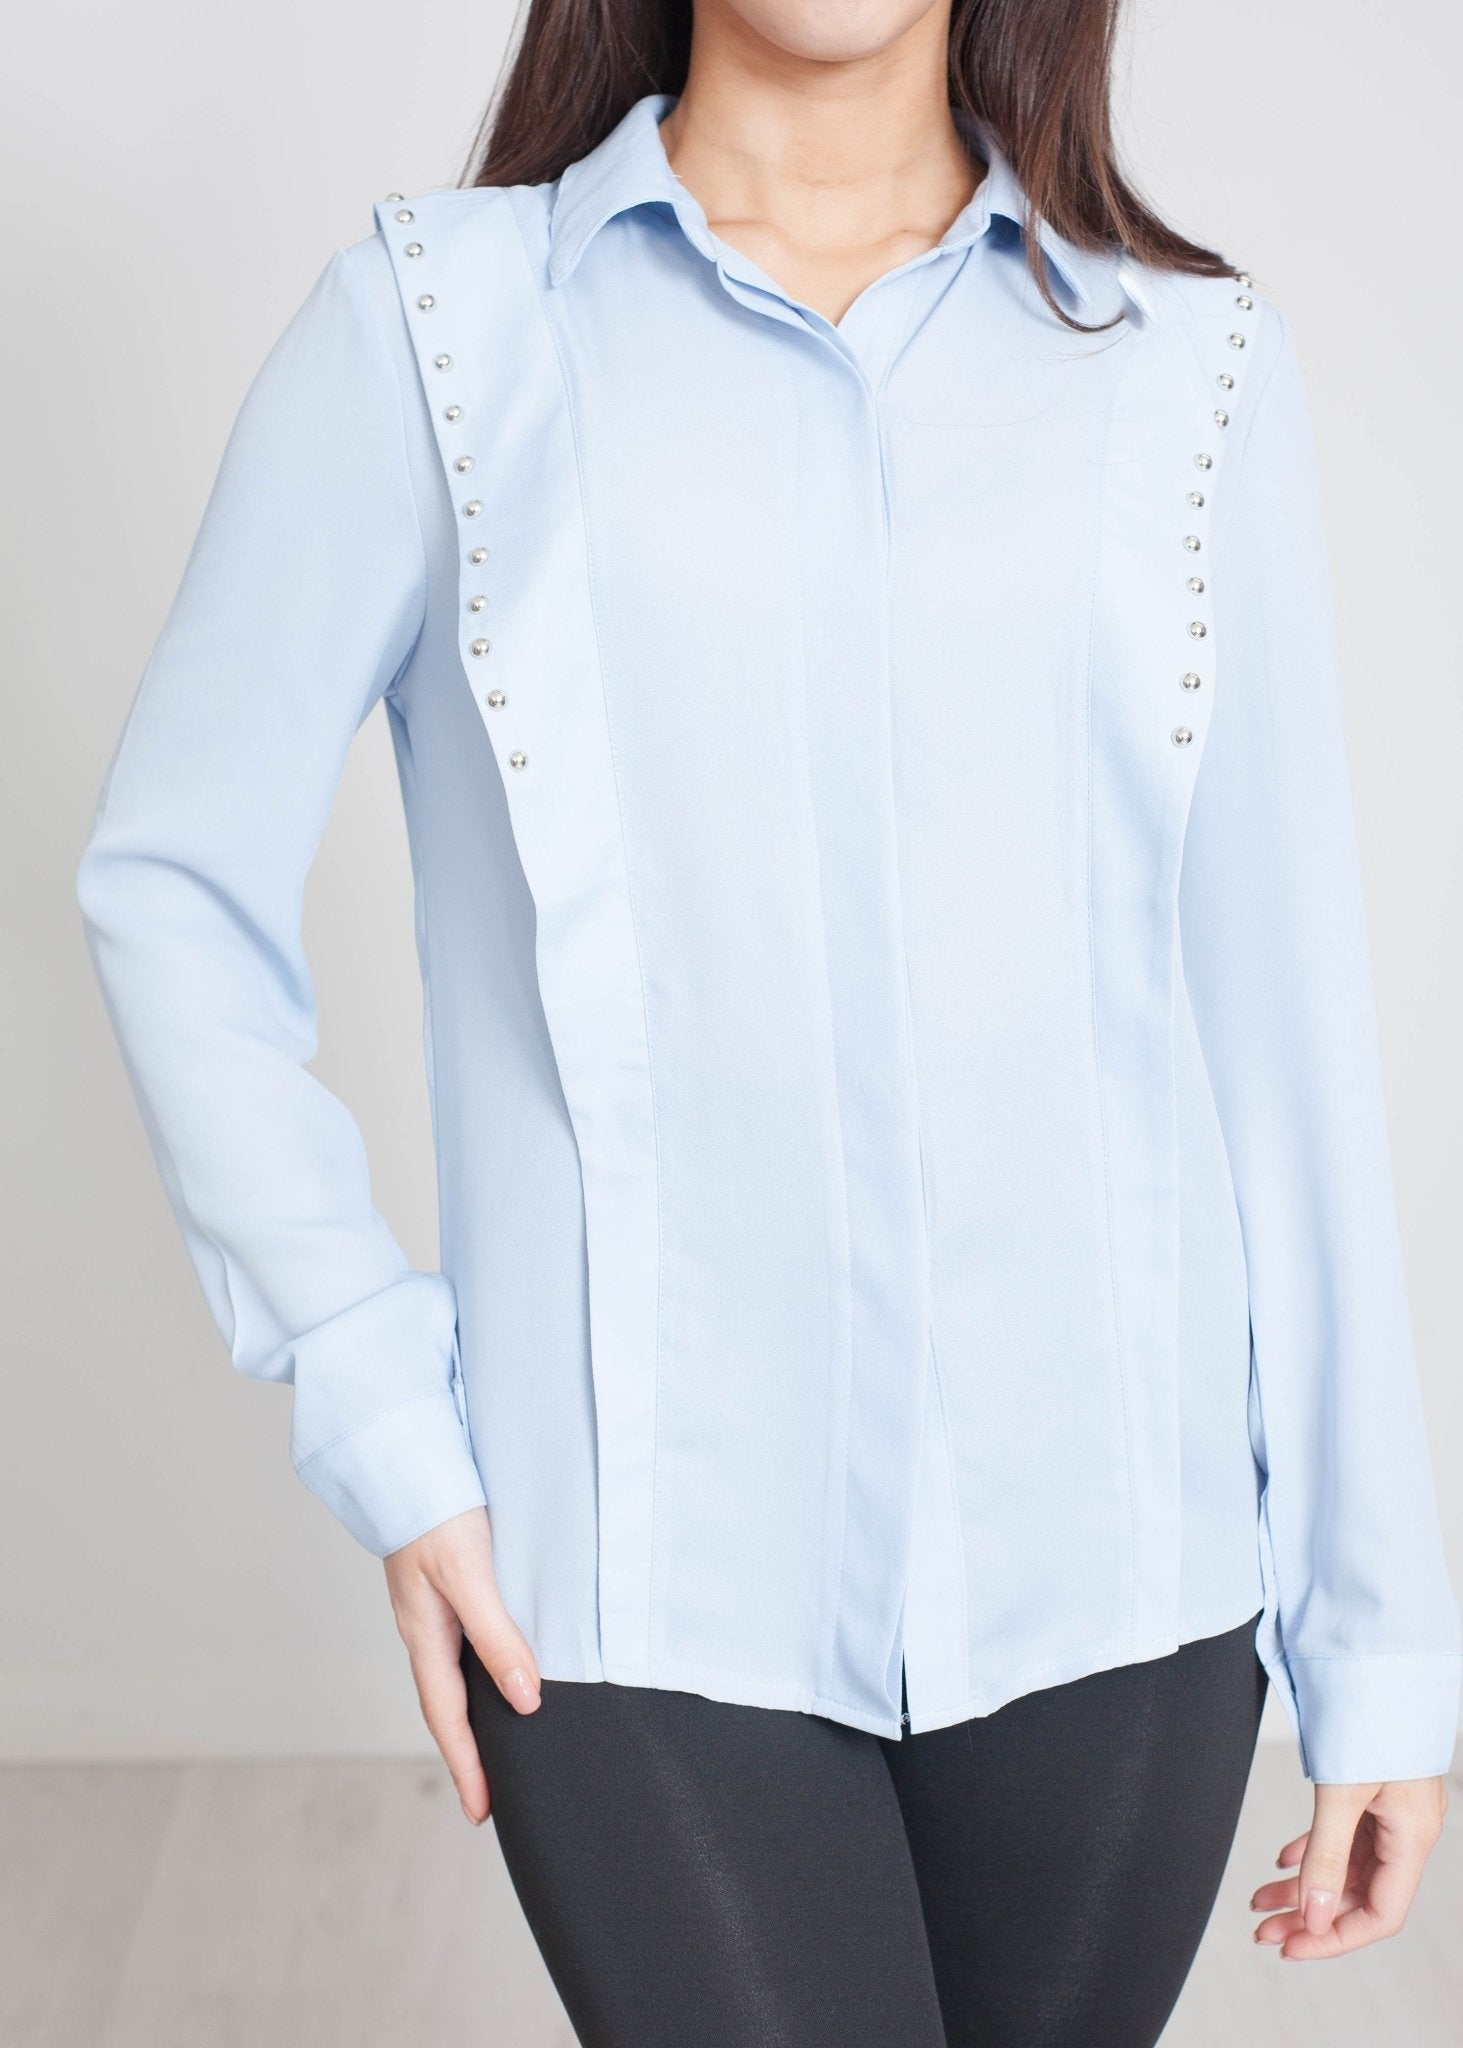 Scarlet Studded Shirt In Blue - The Walk in Wardrobe